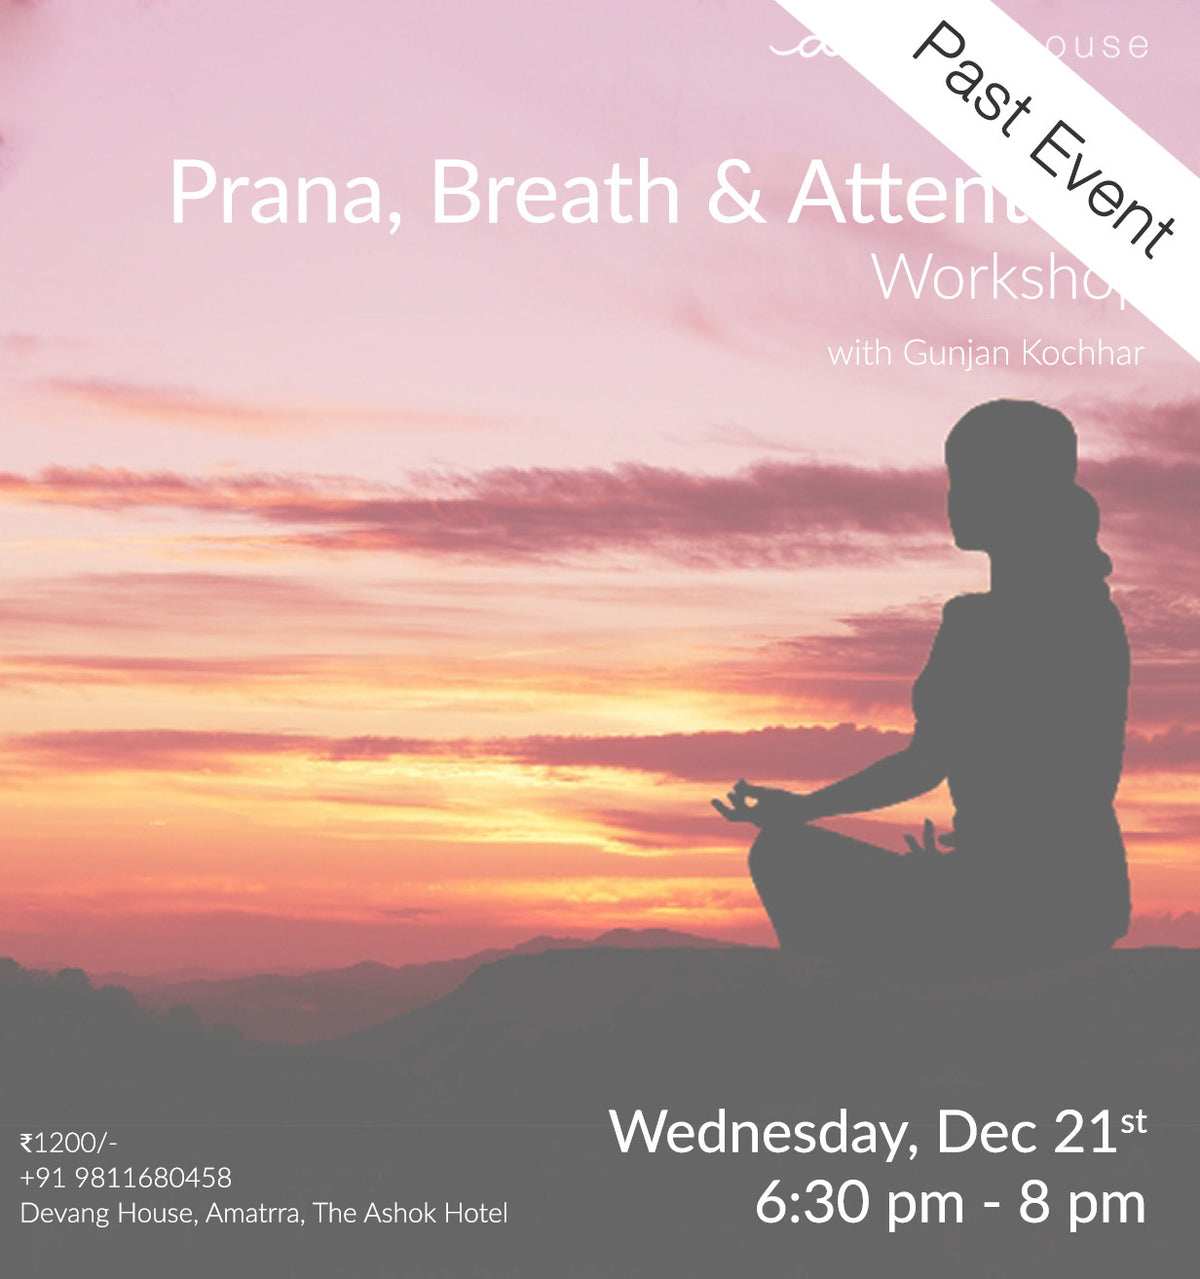 Prana, Breath and Attention Workshop